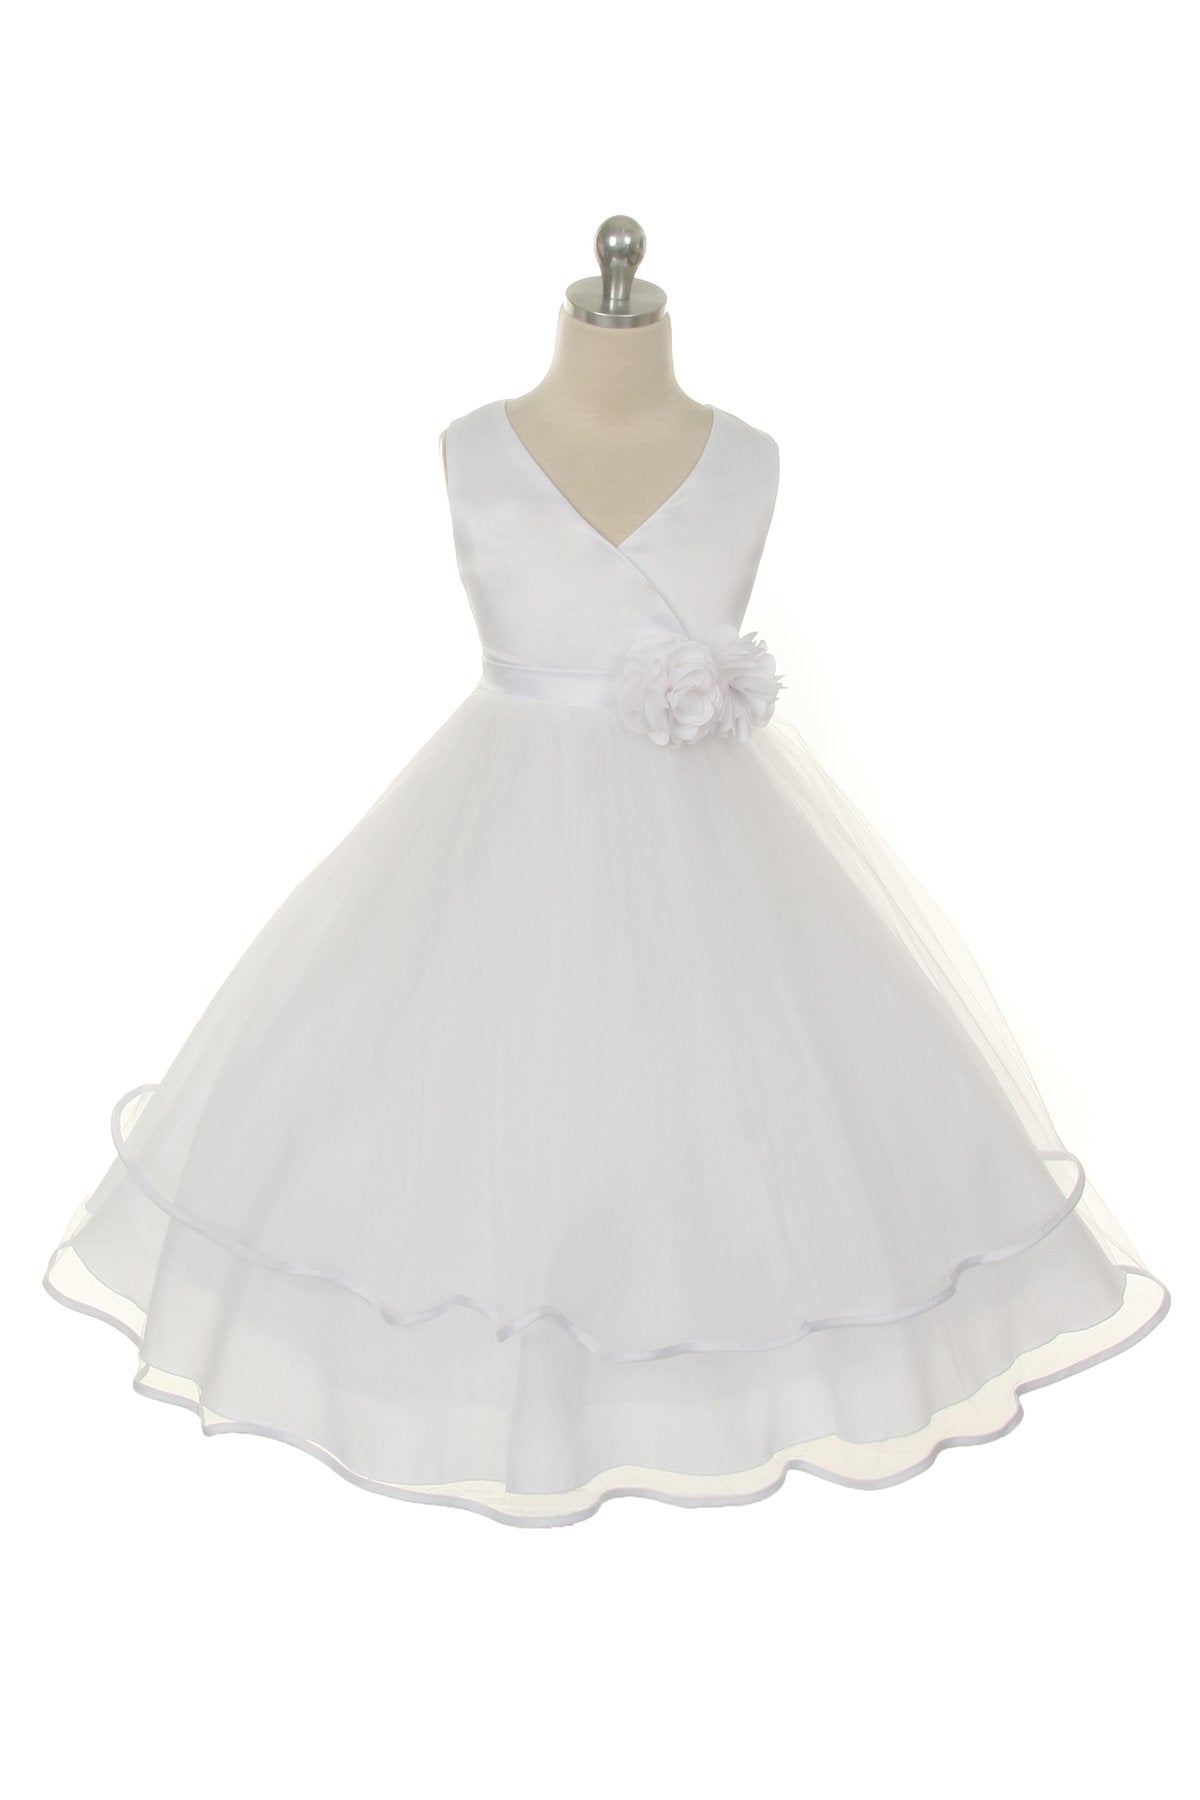 Criss Cross Layered Satin Communion Dress